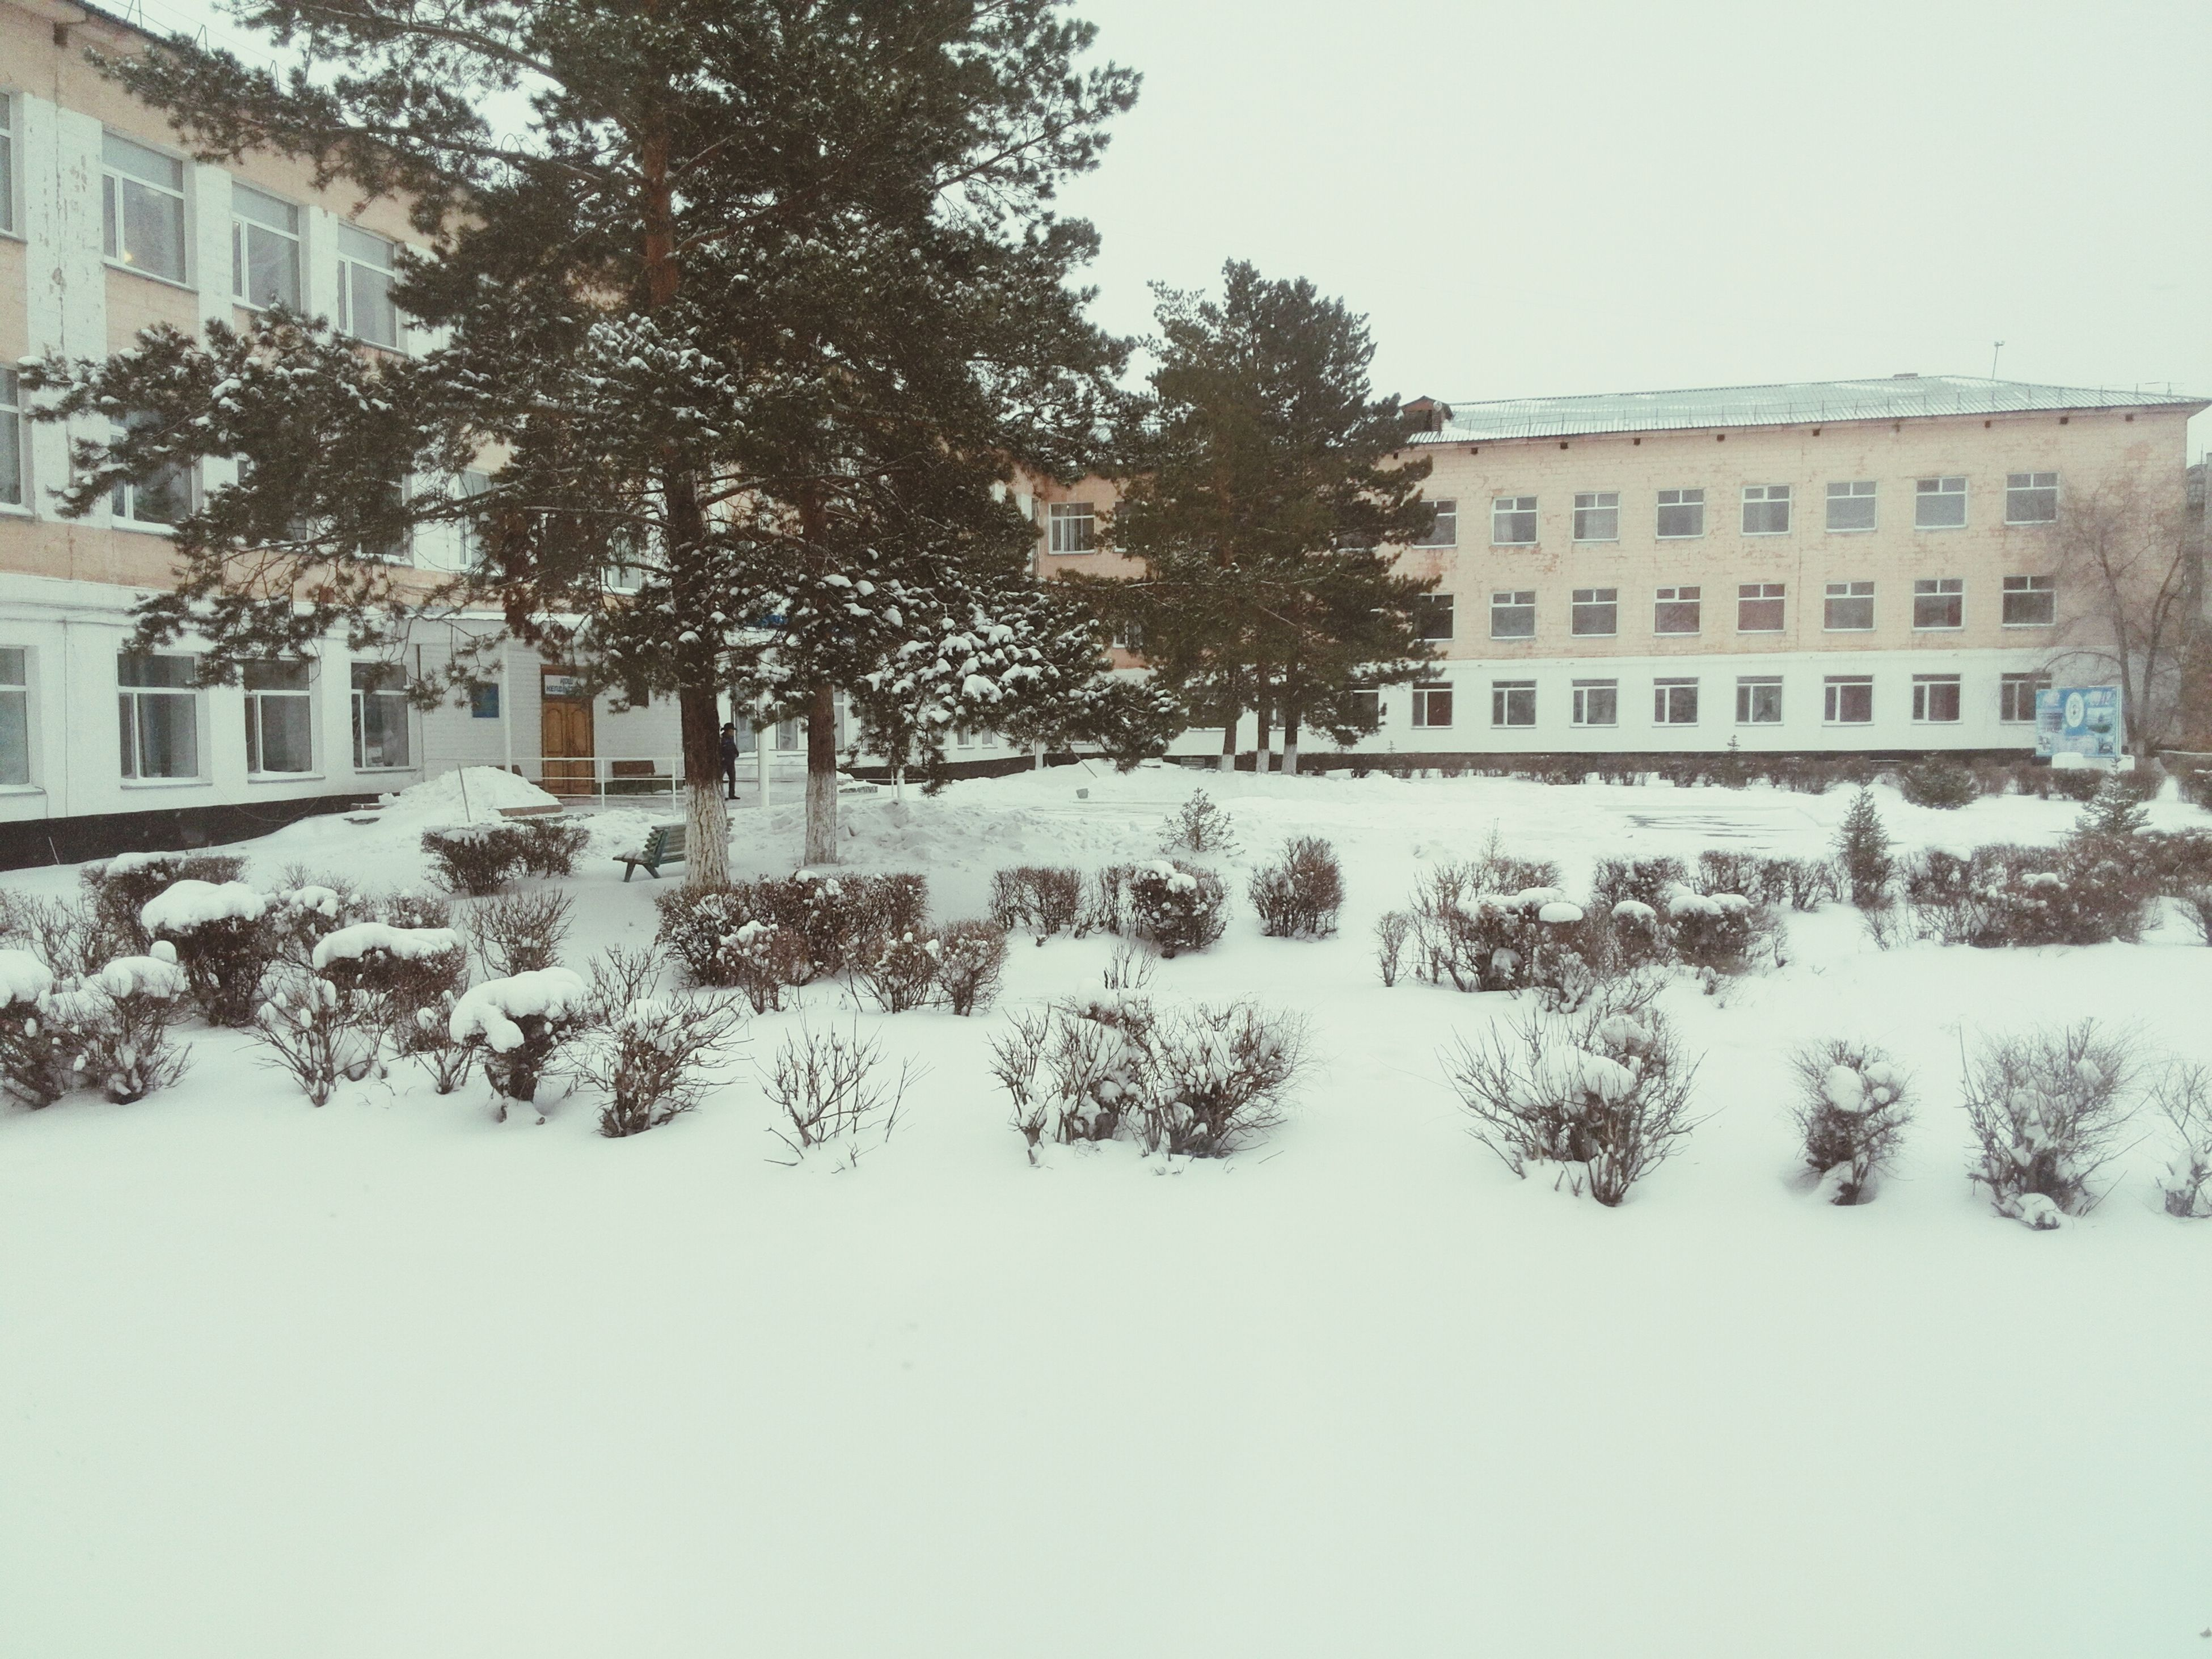 building exterior, architecture, built structure, tree, residential structure, residential building, house, window, building, clear sky, day, snow, winter, outdoors, city, wall - building feature, no people, growth, cold temperature, plant